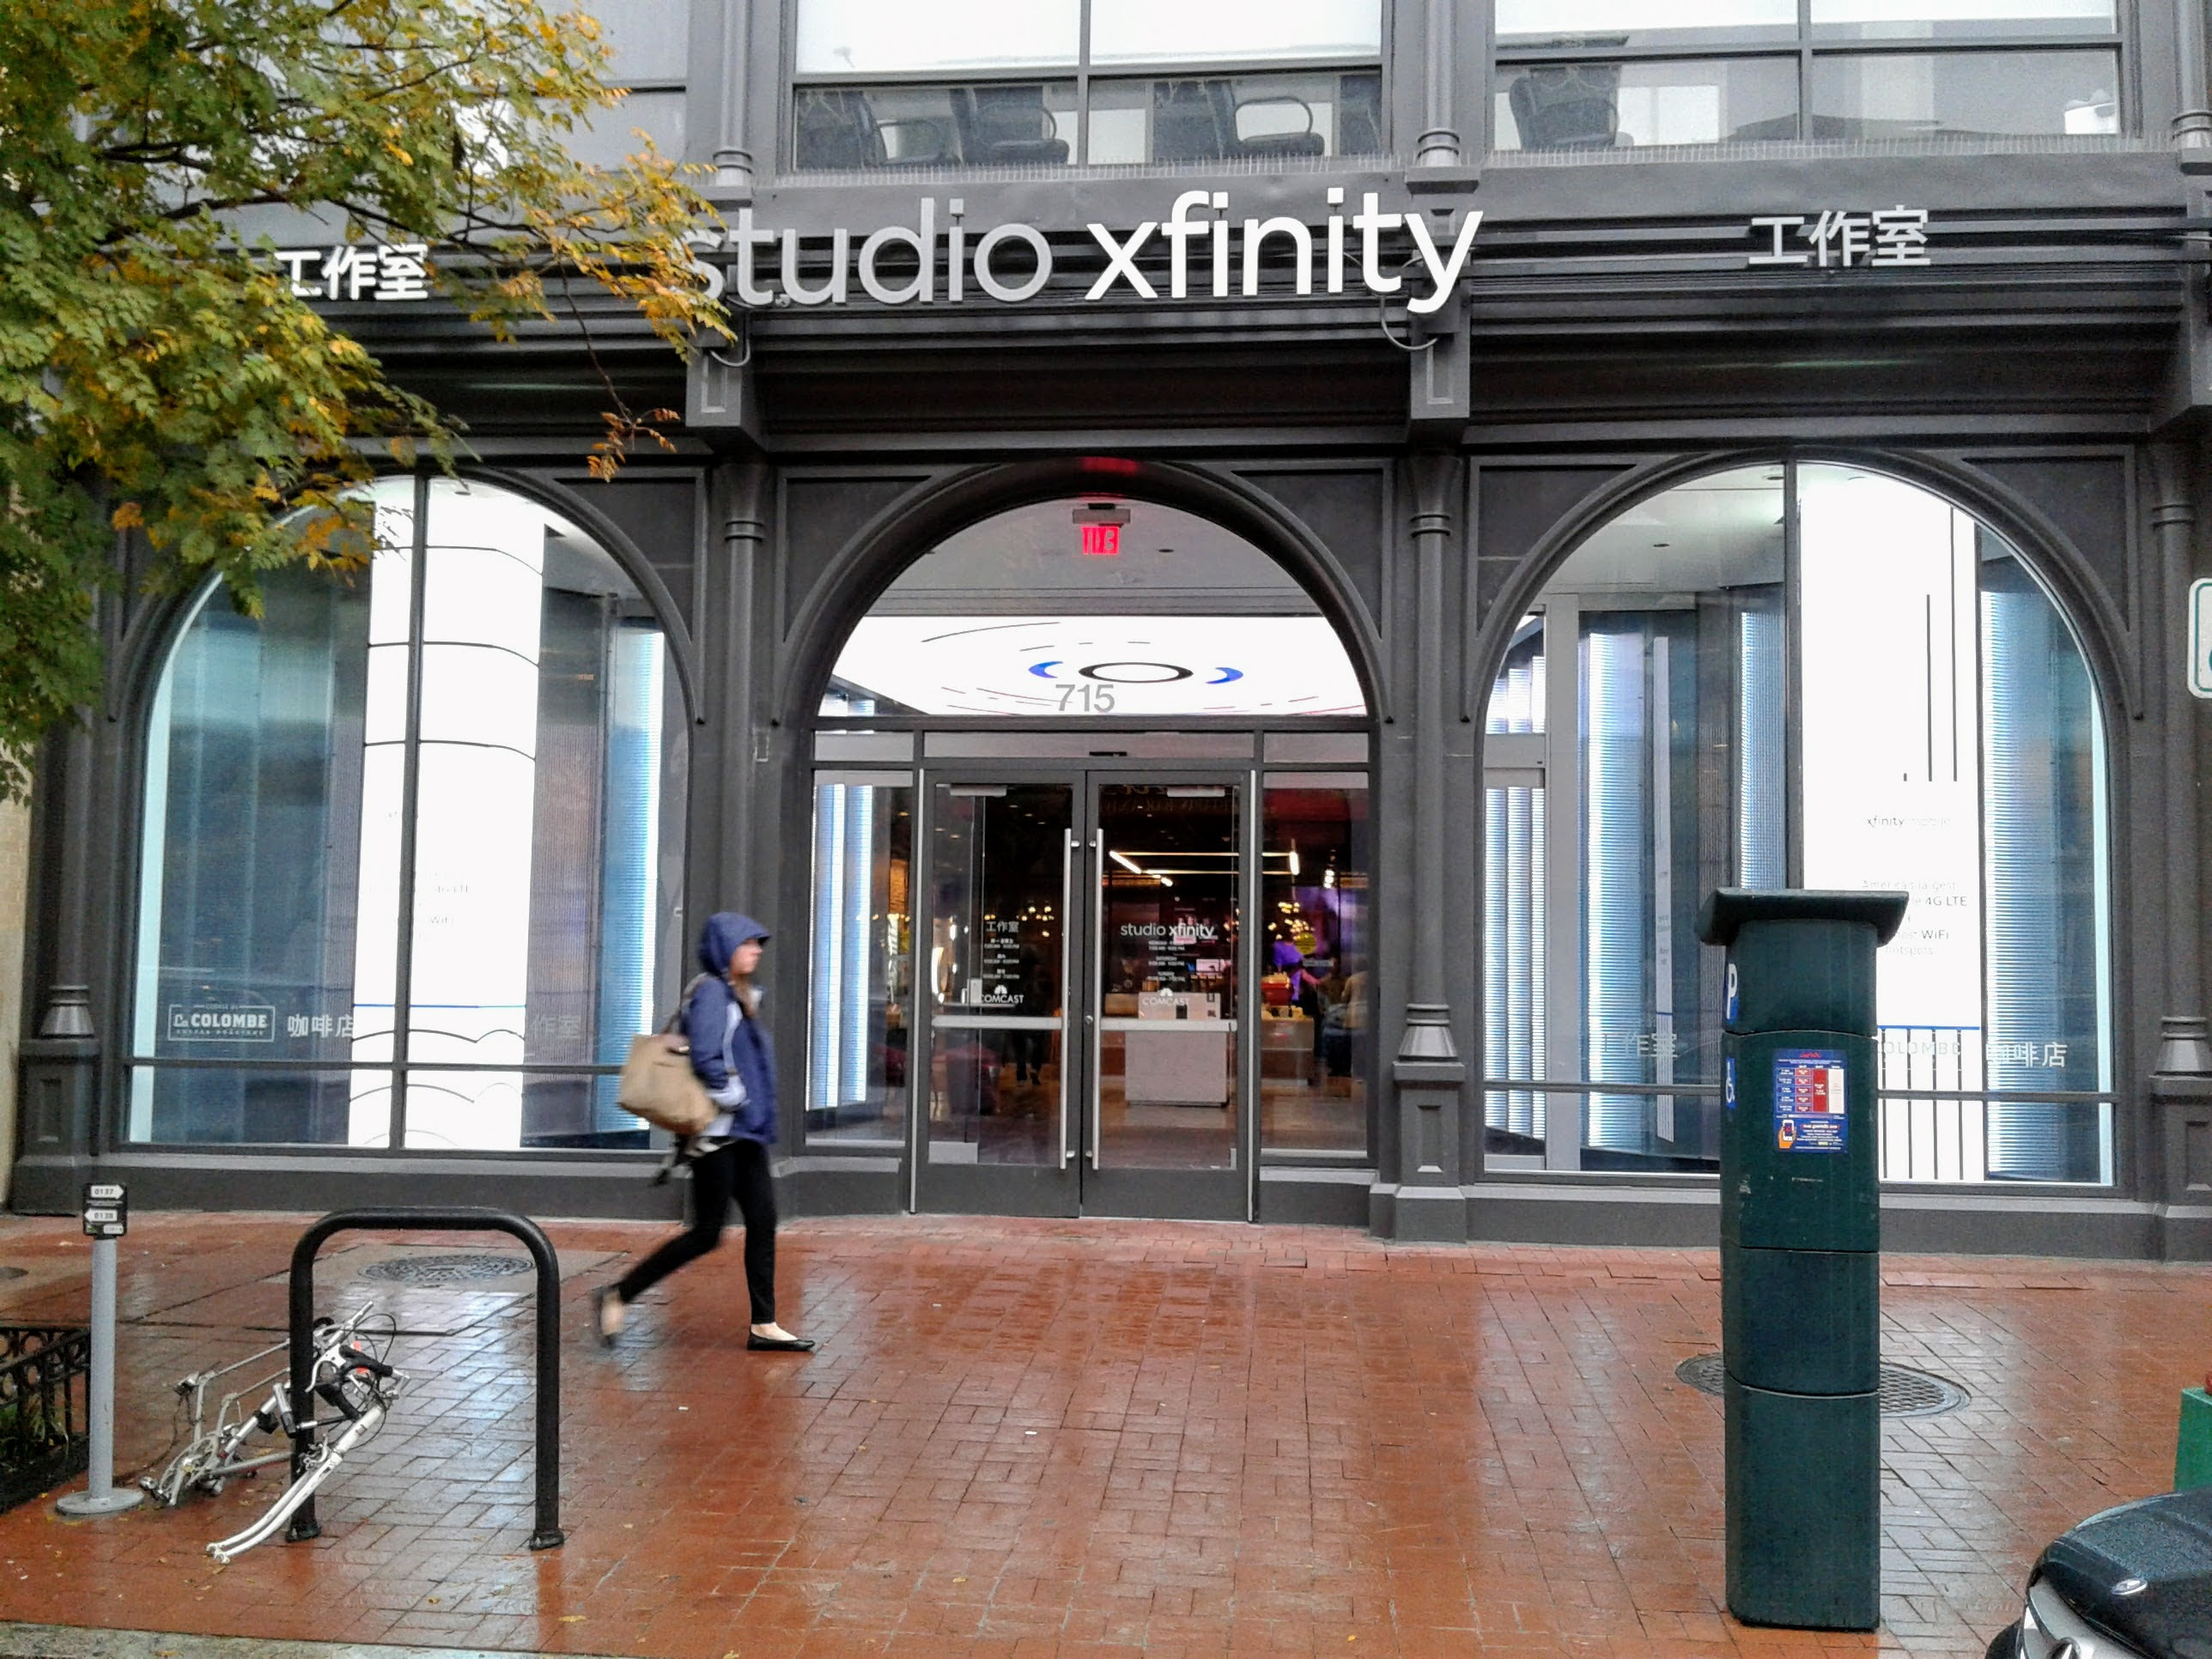 comcast studio xfinity store washington dc chinatown 7th st nw downtown cable tv internet phone